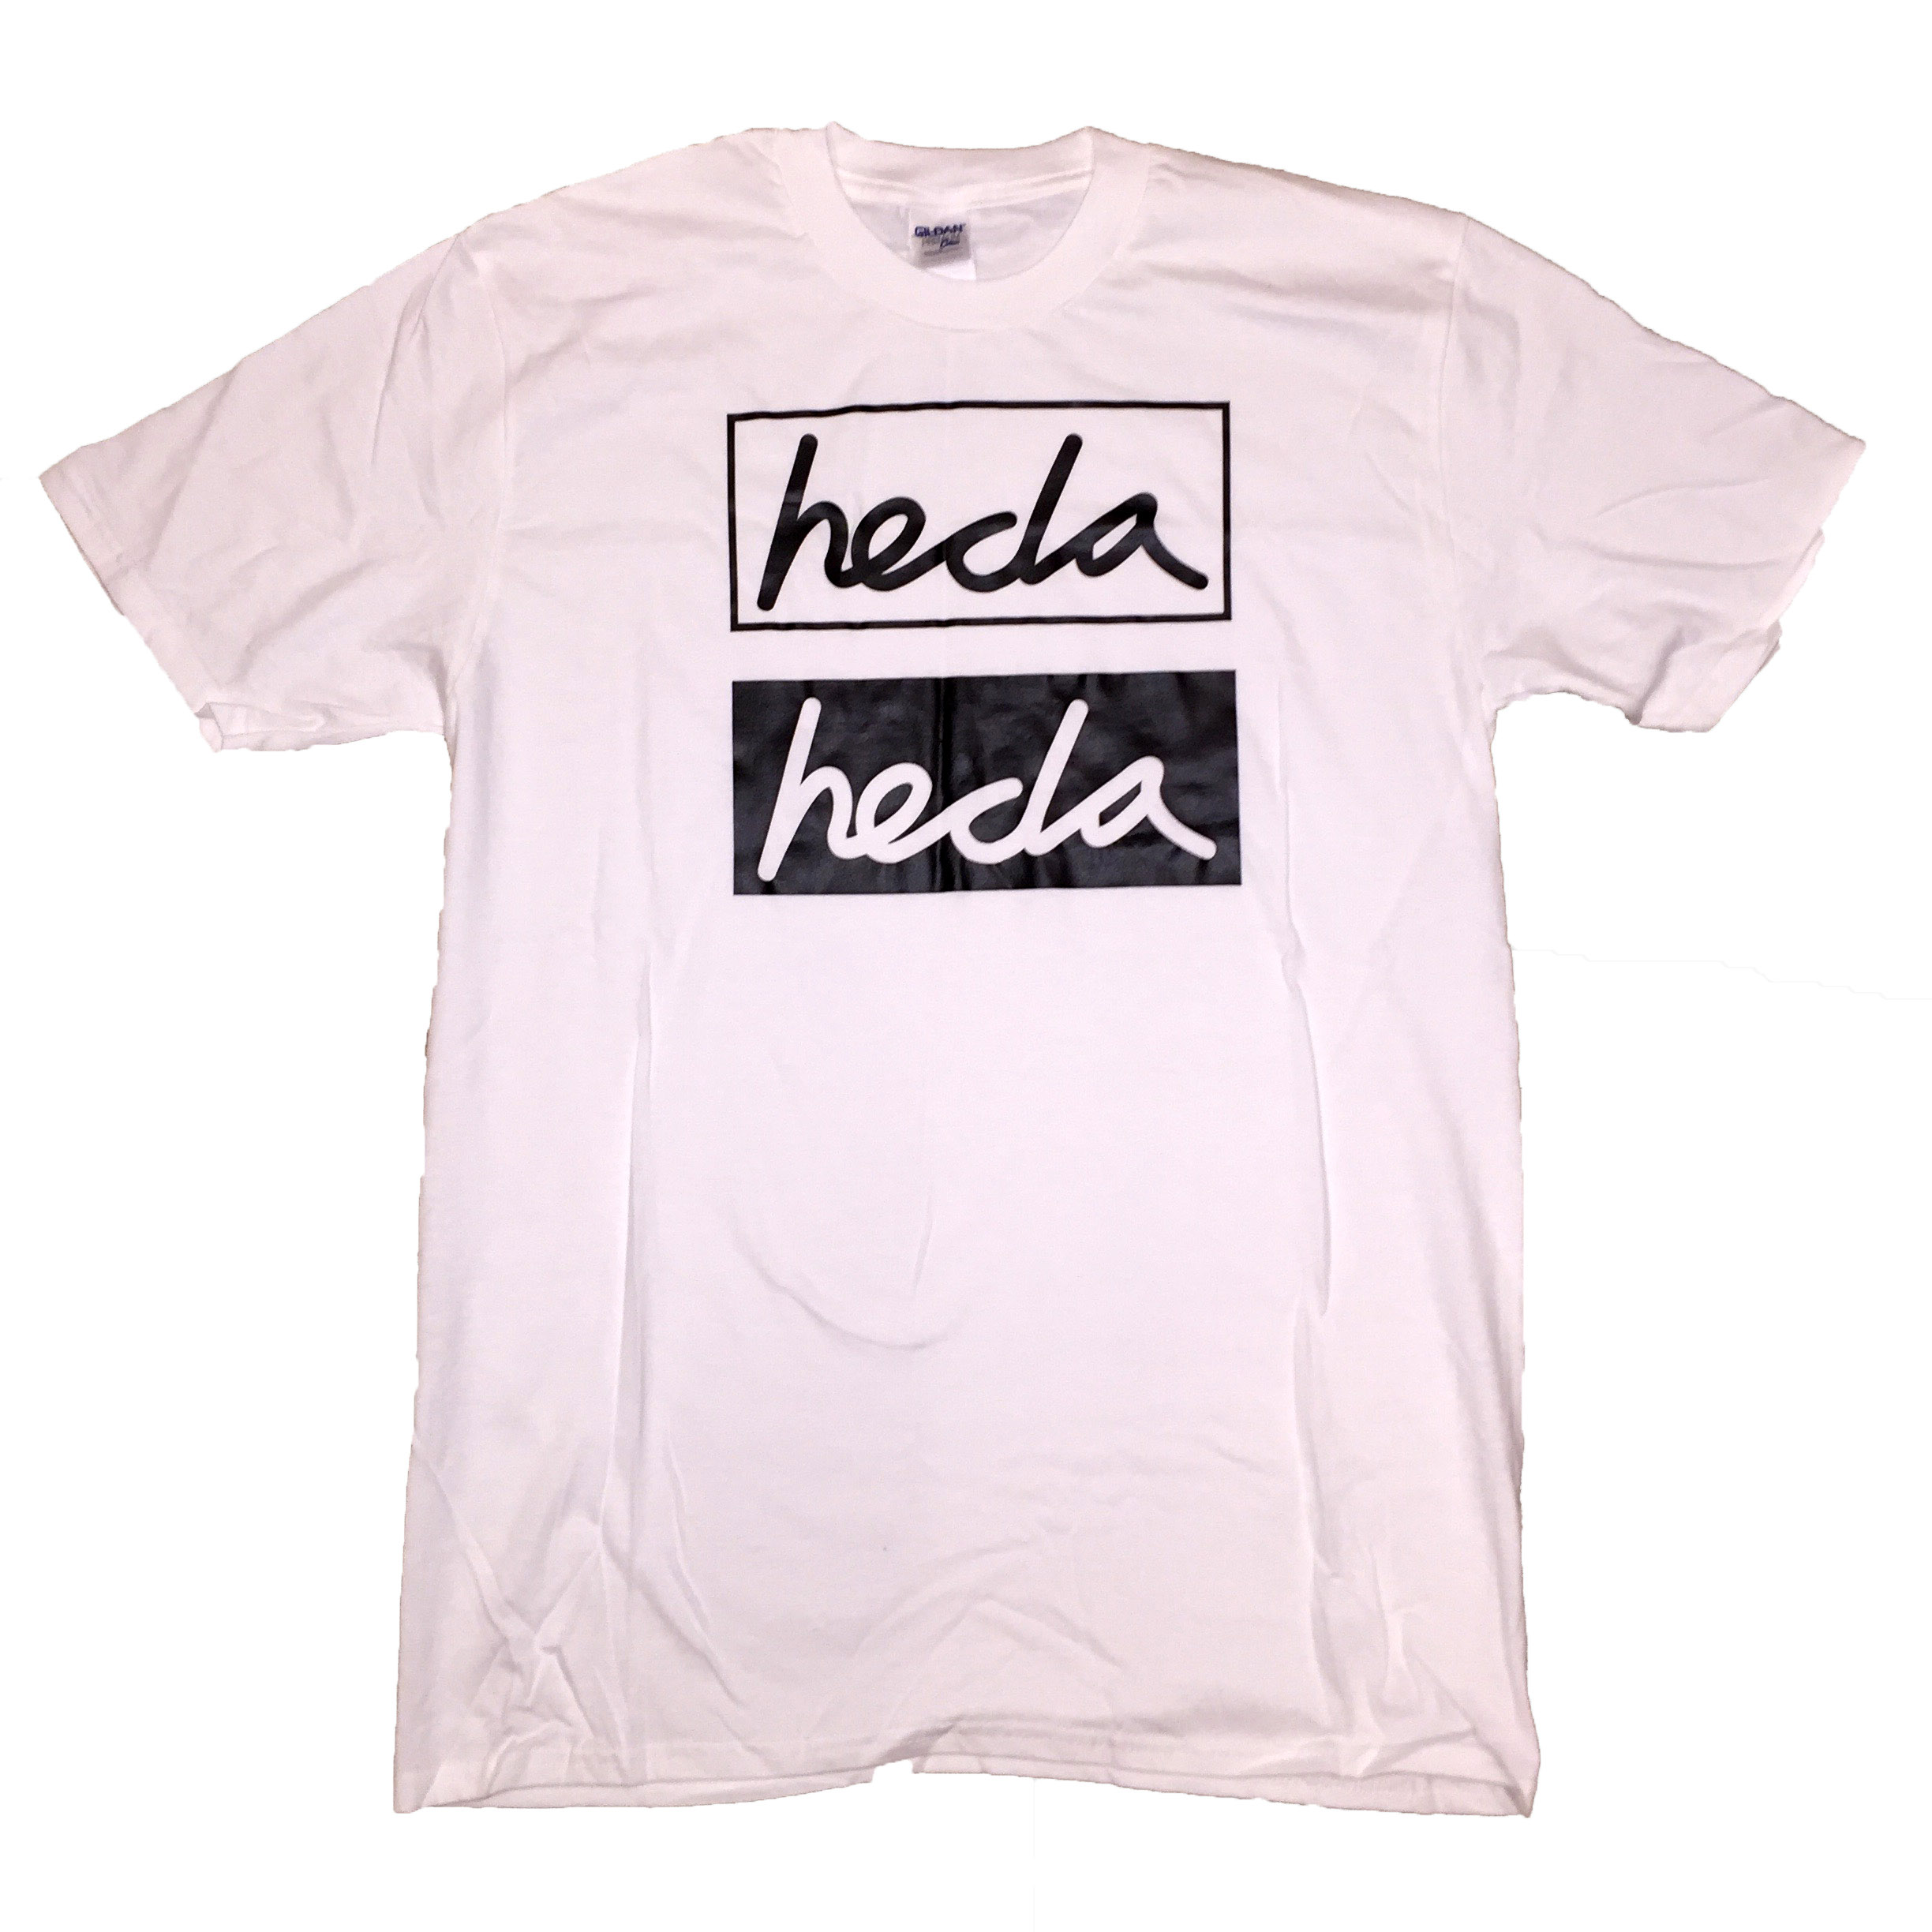 Box T - WHITE - Hecla Clothing